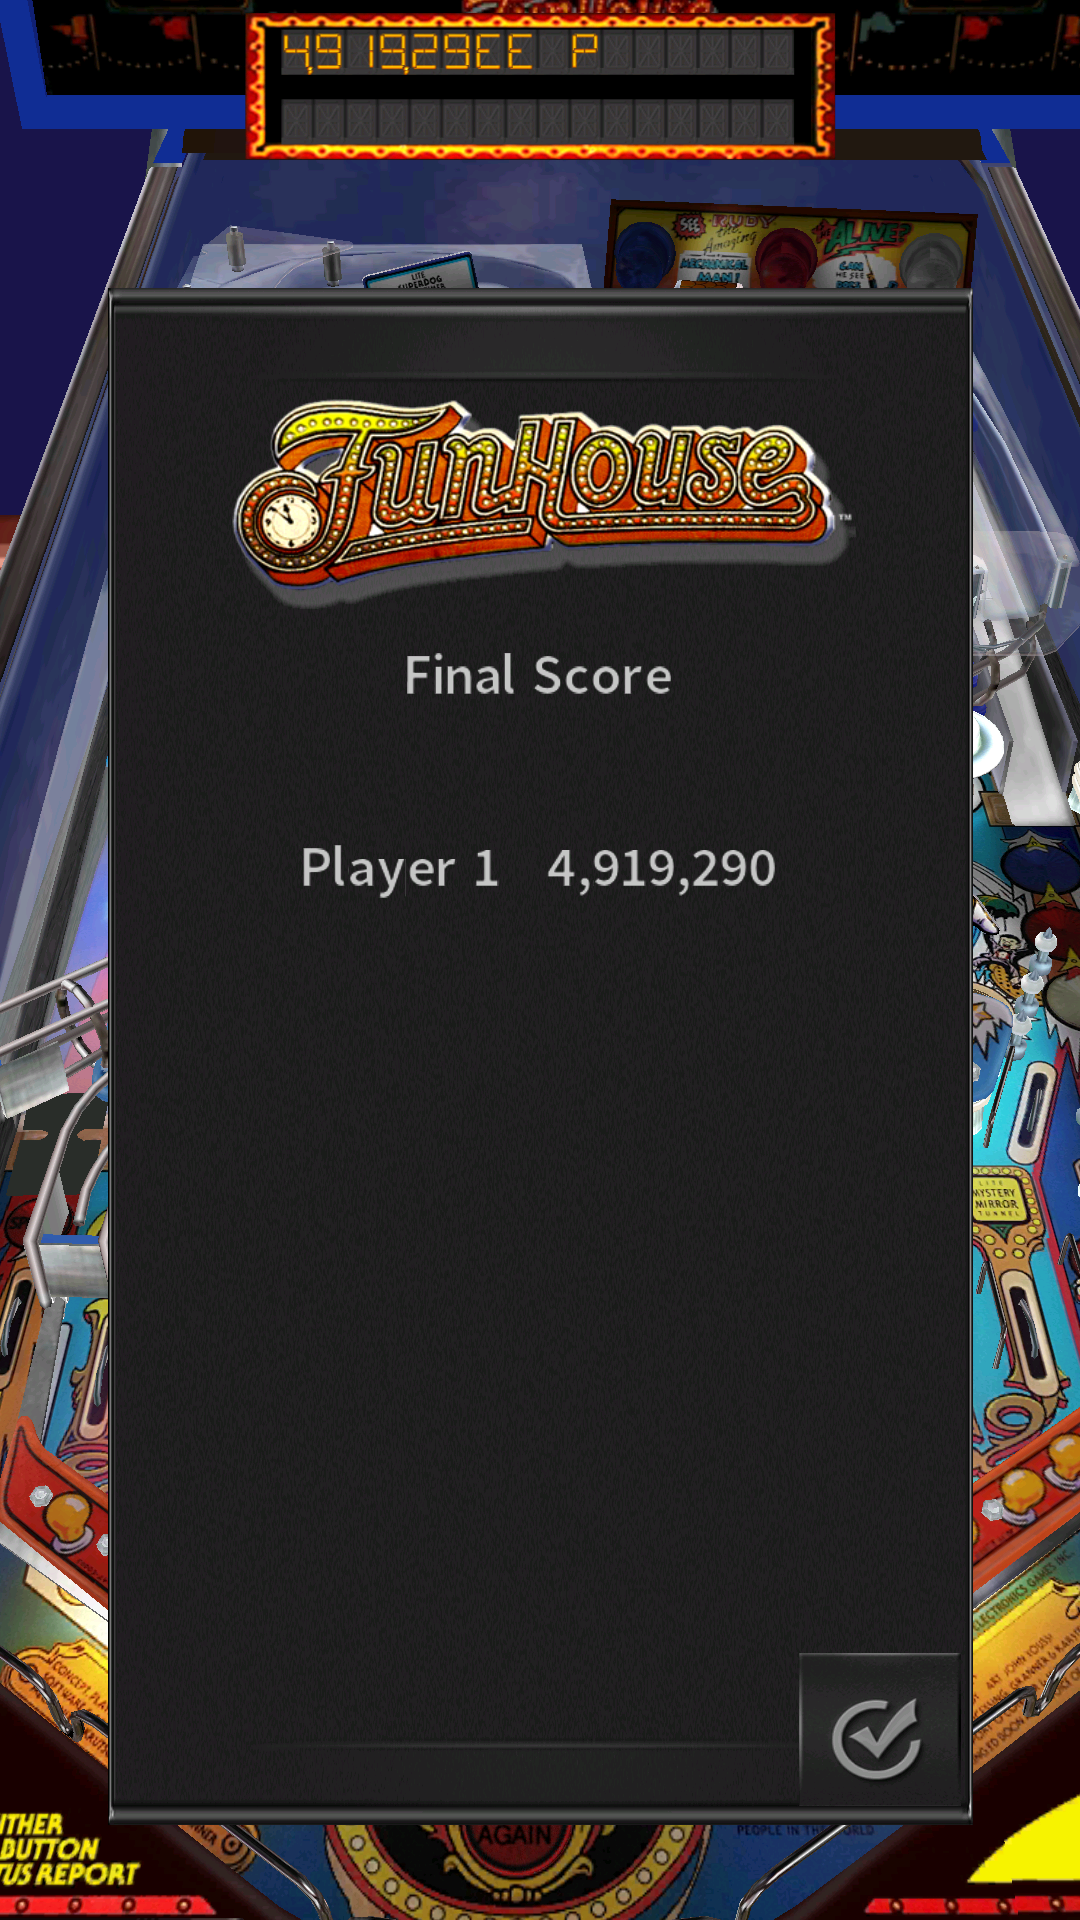 JES: Pinball Arcade: Funhouse (Android) 4,919,290 points on 2016-12-04 21:07:41